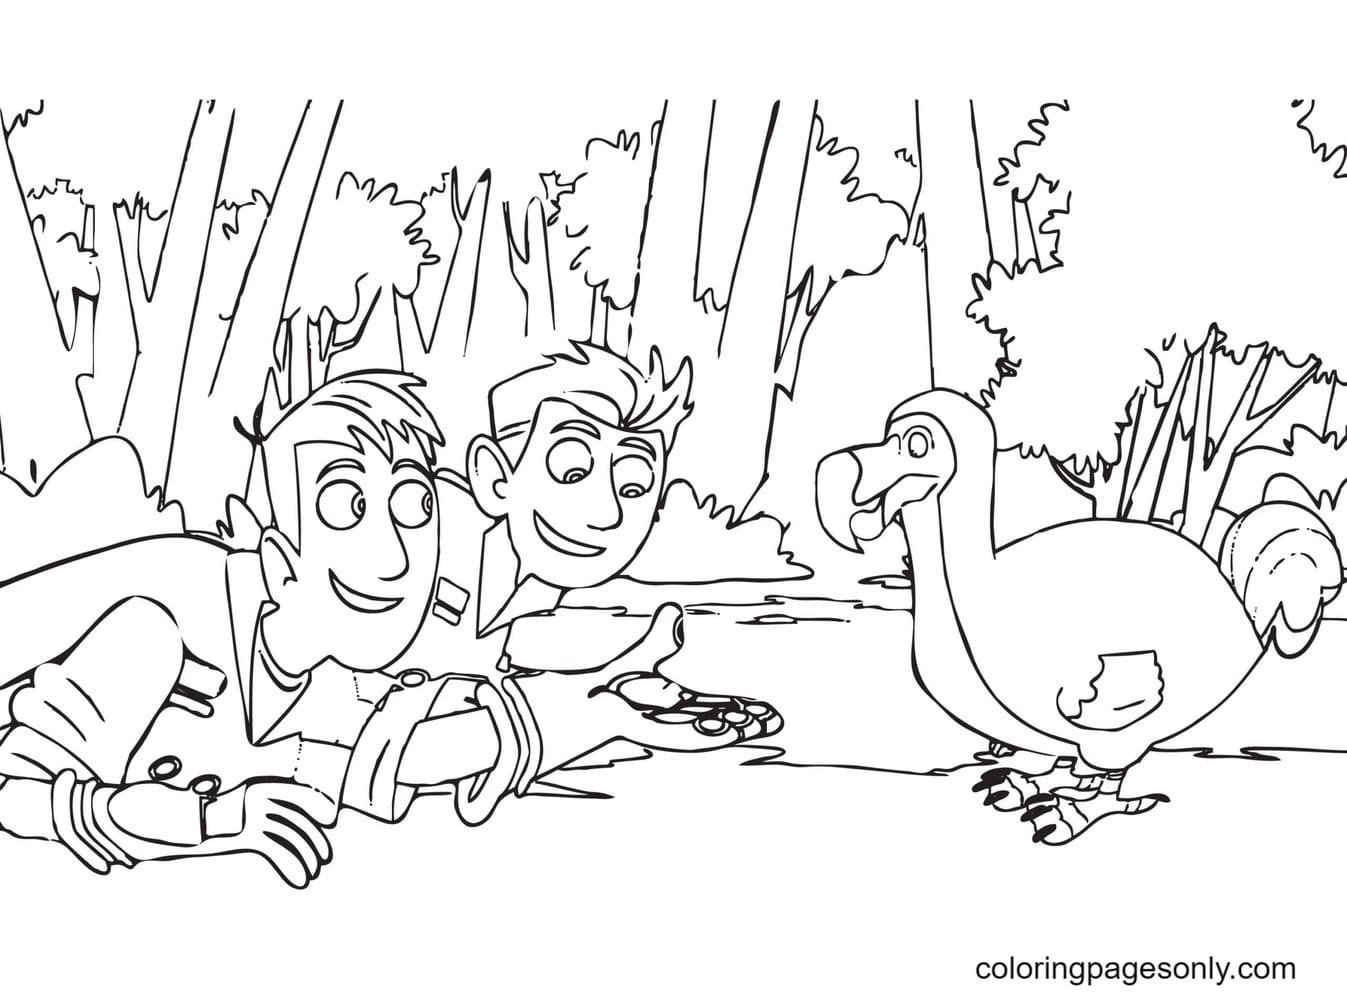 Chris and Martin Coloring Page